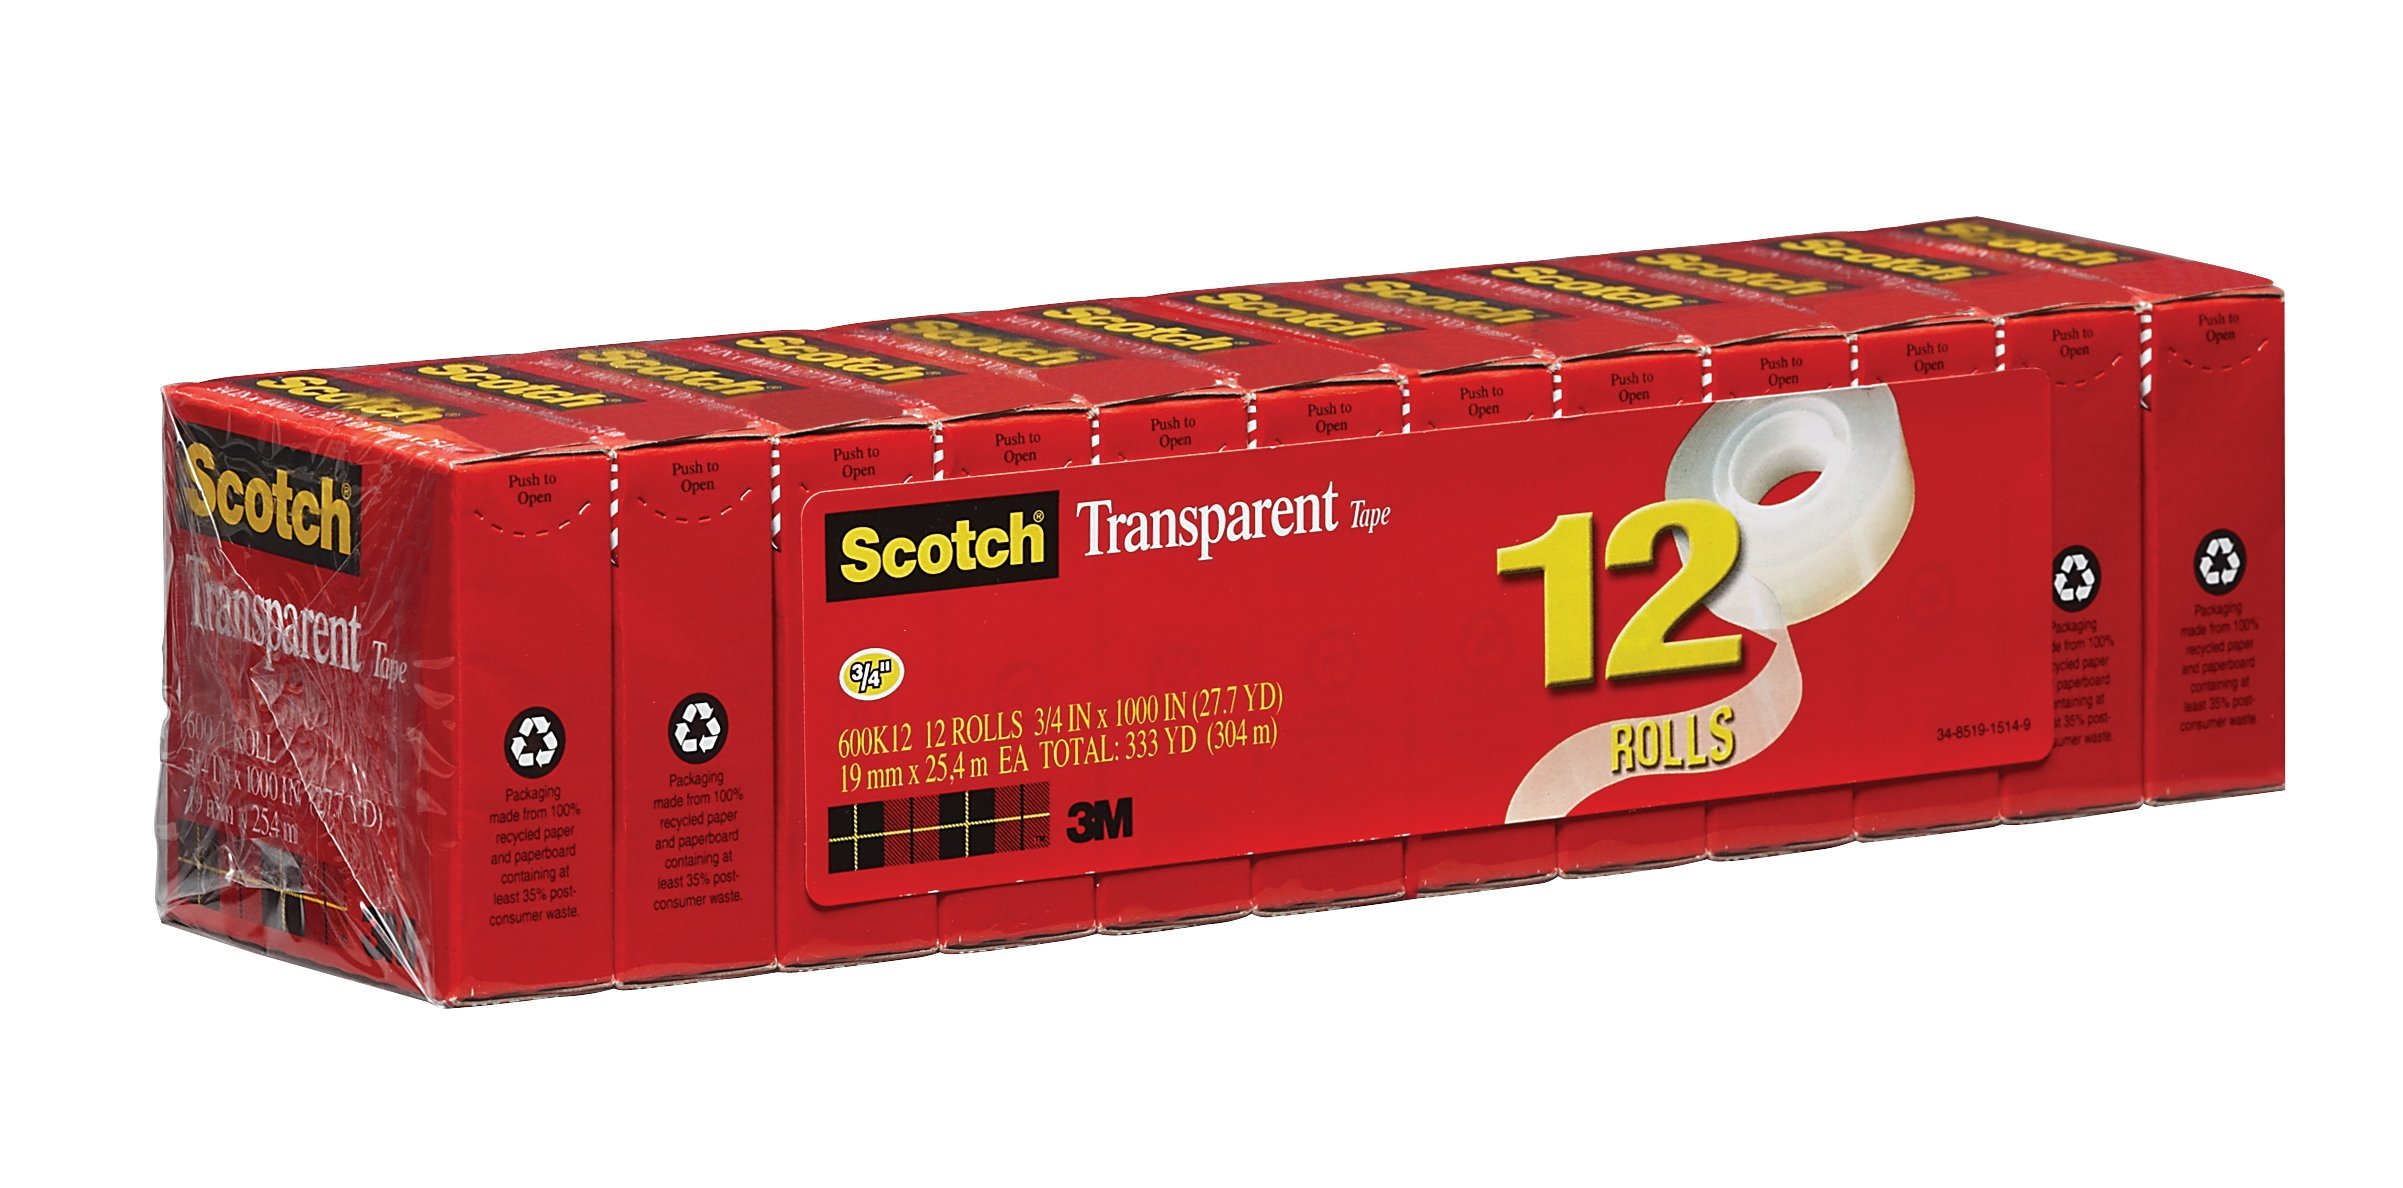 Scotch Brand Transparent Tape, Standard Width, Great Value, Glossy Finish, Cuts Cleanly, Engineered for Office and Home Use, 3/4 x 1000 Inches, Boxed, 12 Rolls (600K12)